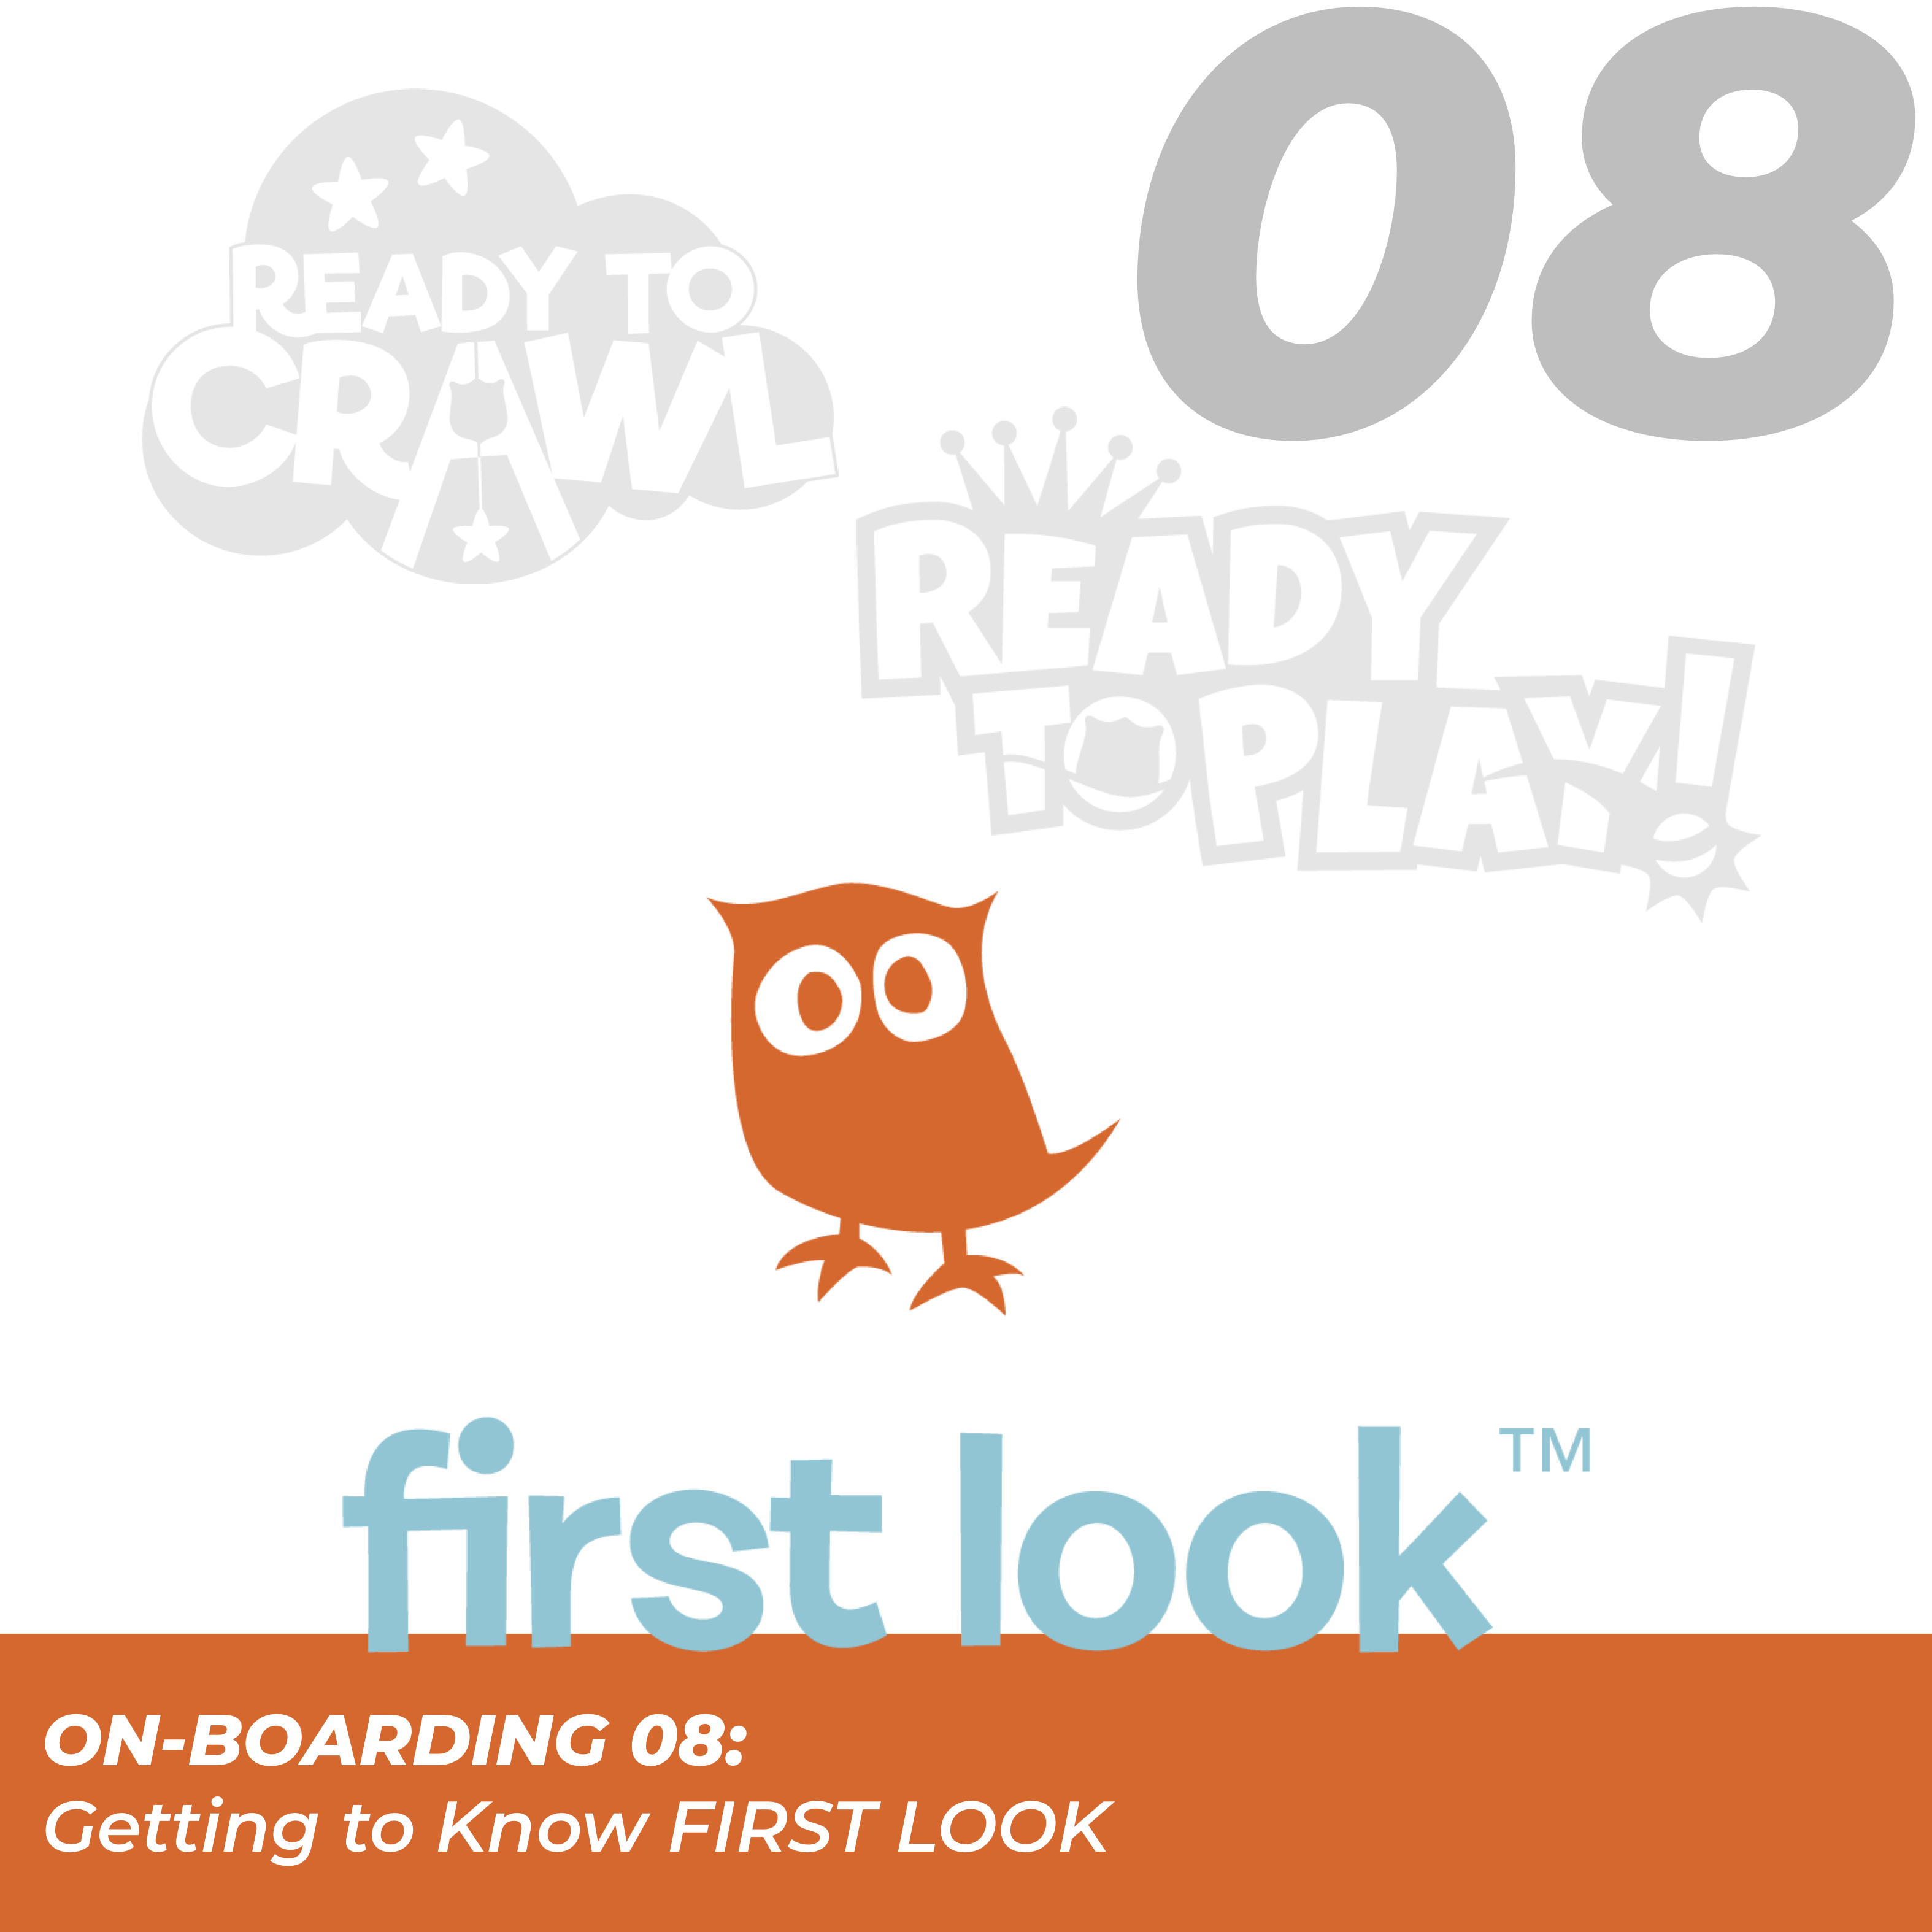 Click here for On-boarding 08: Getting to know First Look.